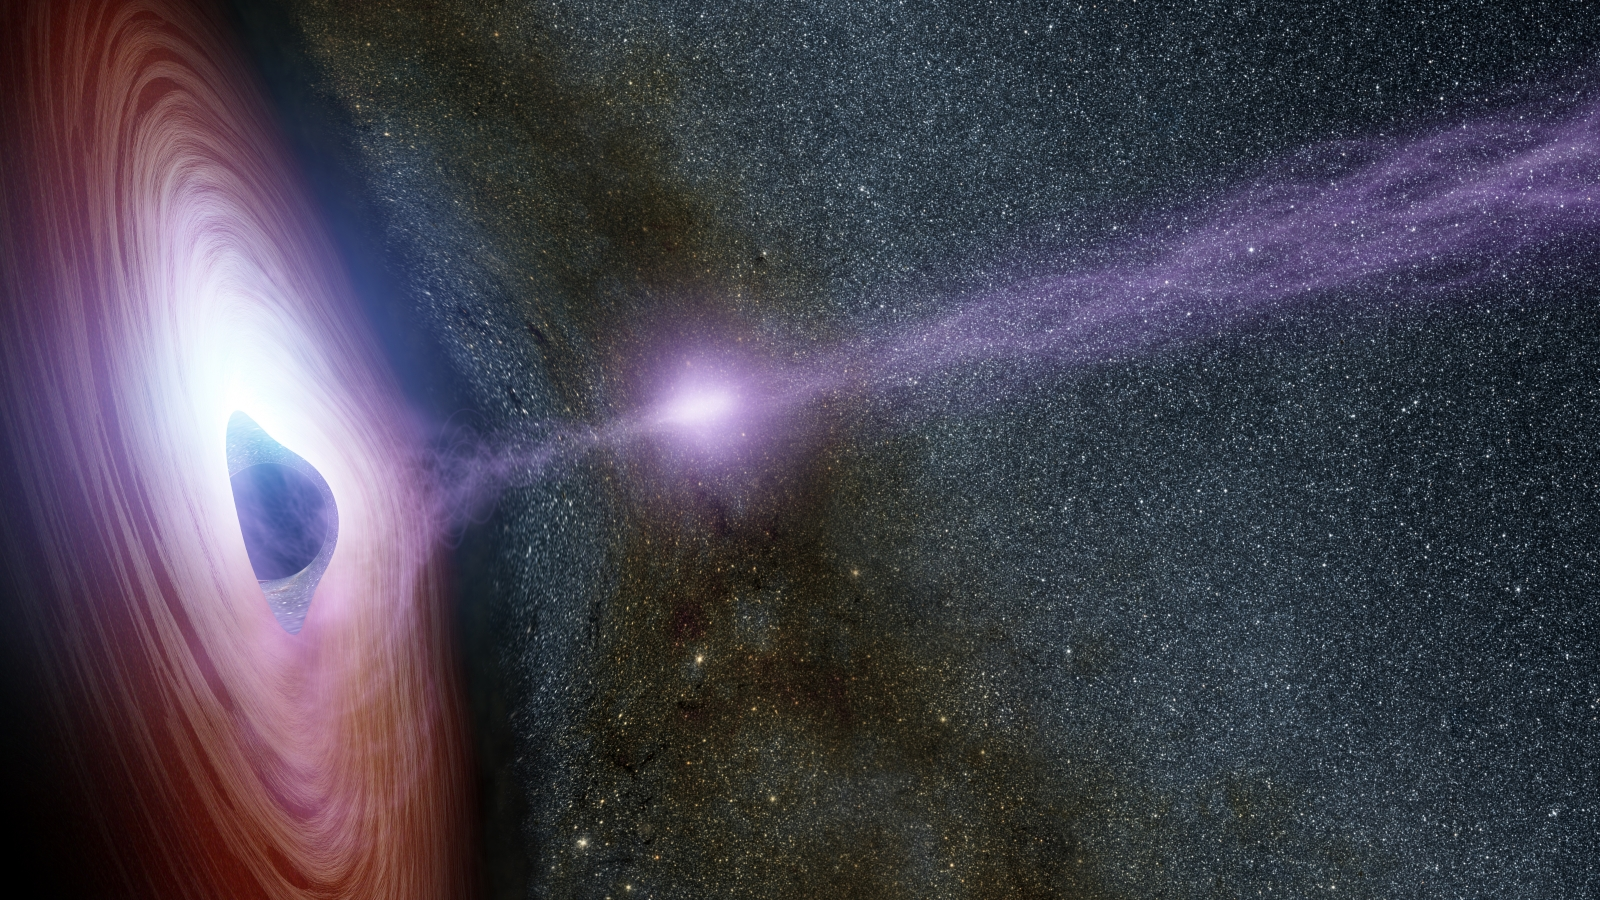 Supermassive Black Holes Can Control Star Formation In Large Galaxies